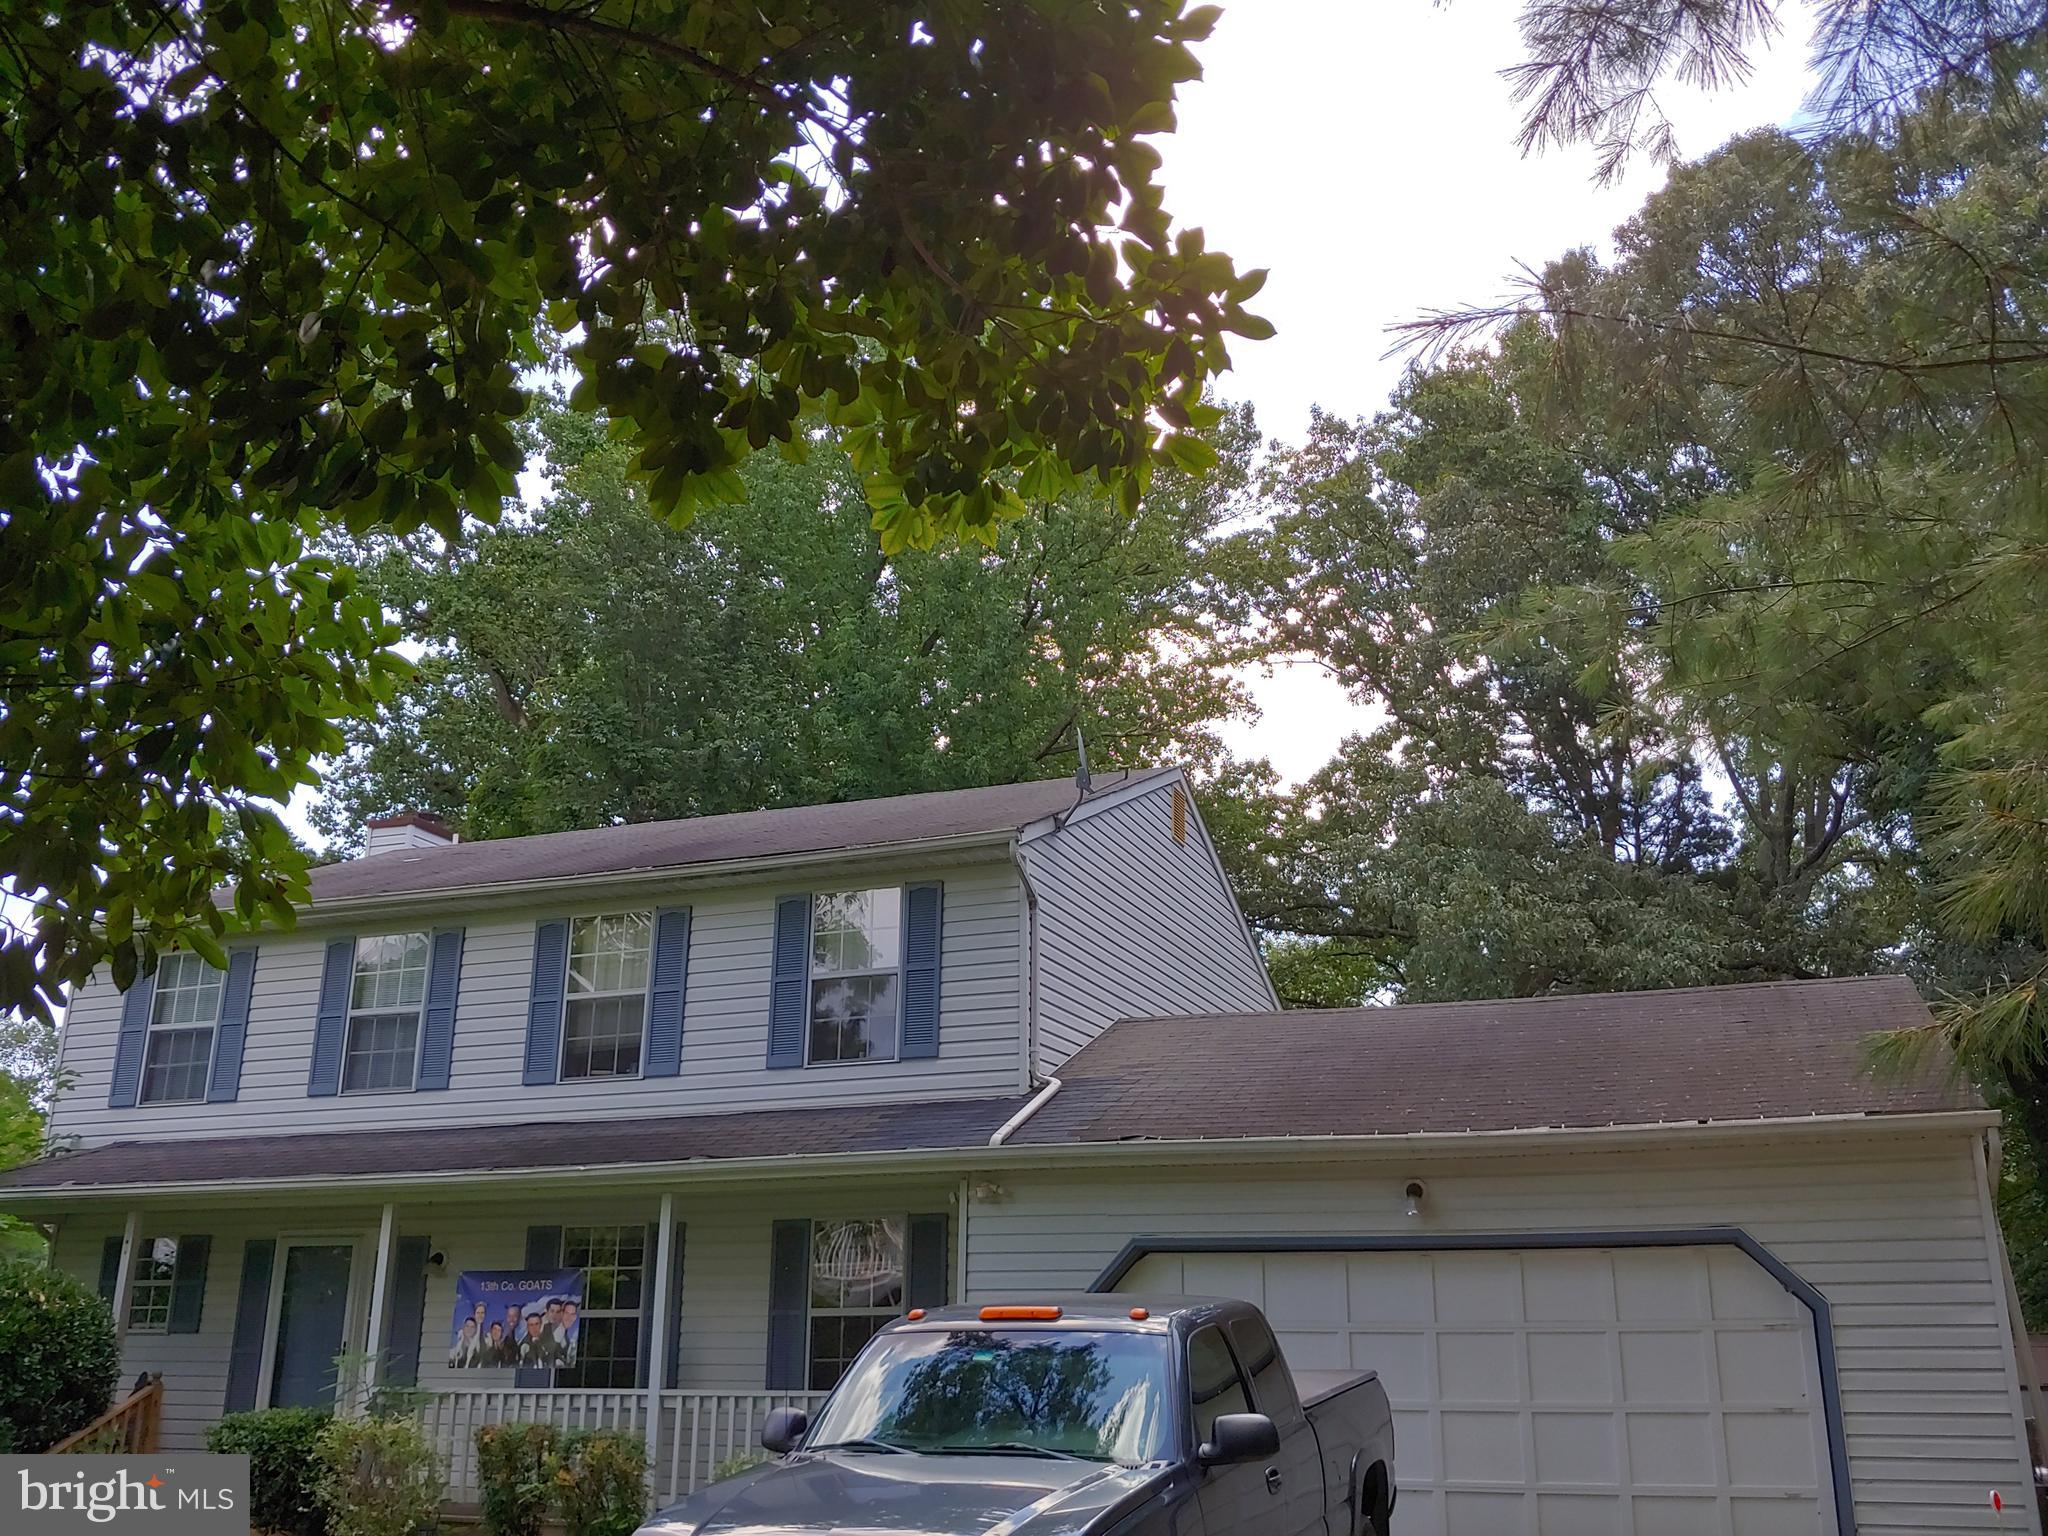 744 DIVIDING CREEK ROAD, ARNOLD, MD 21012